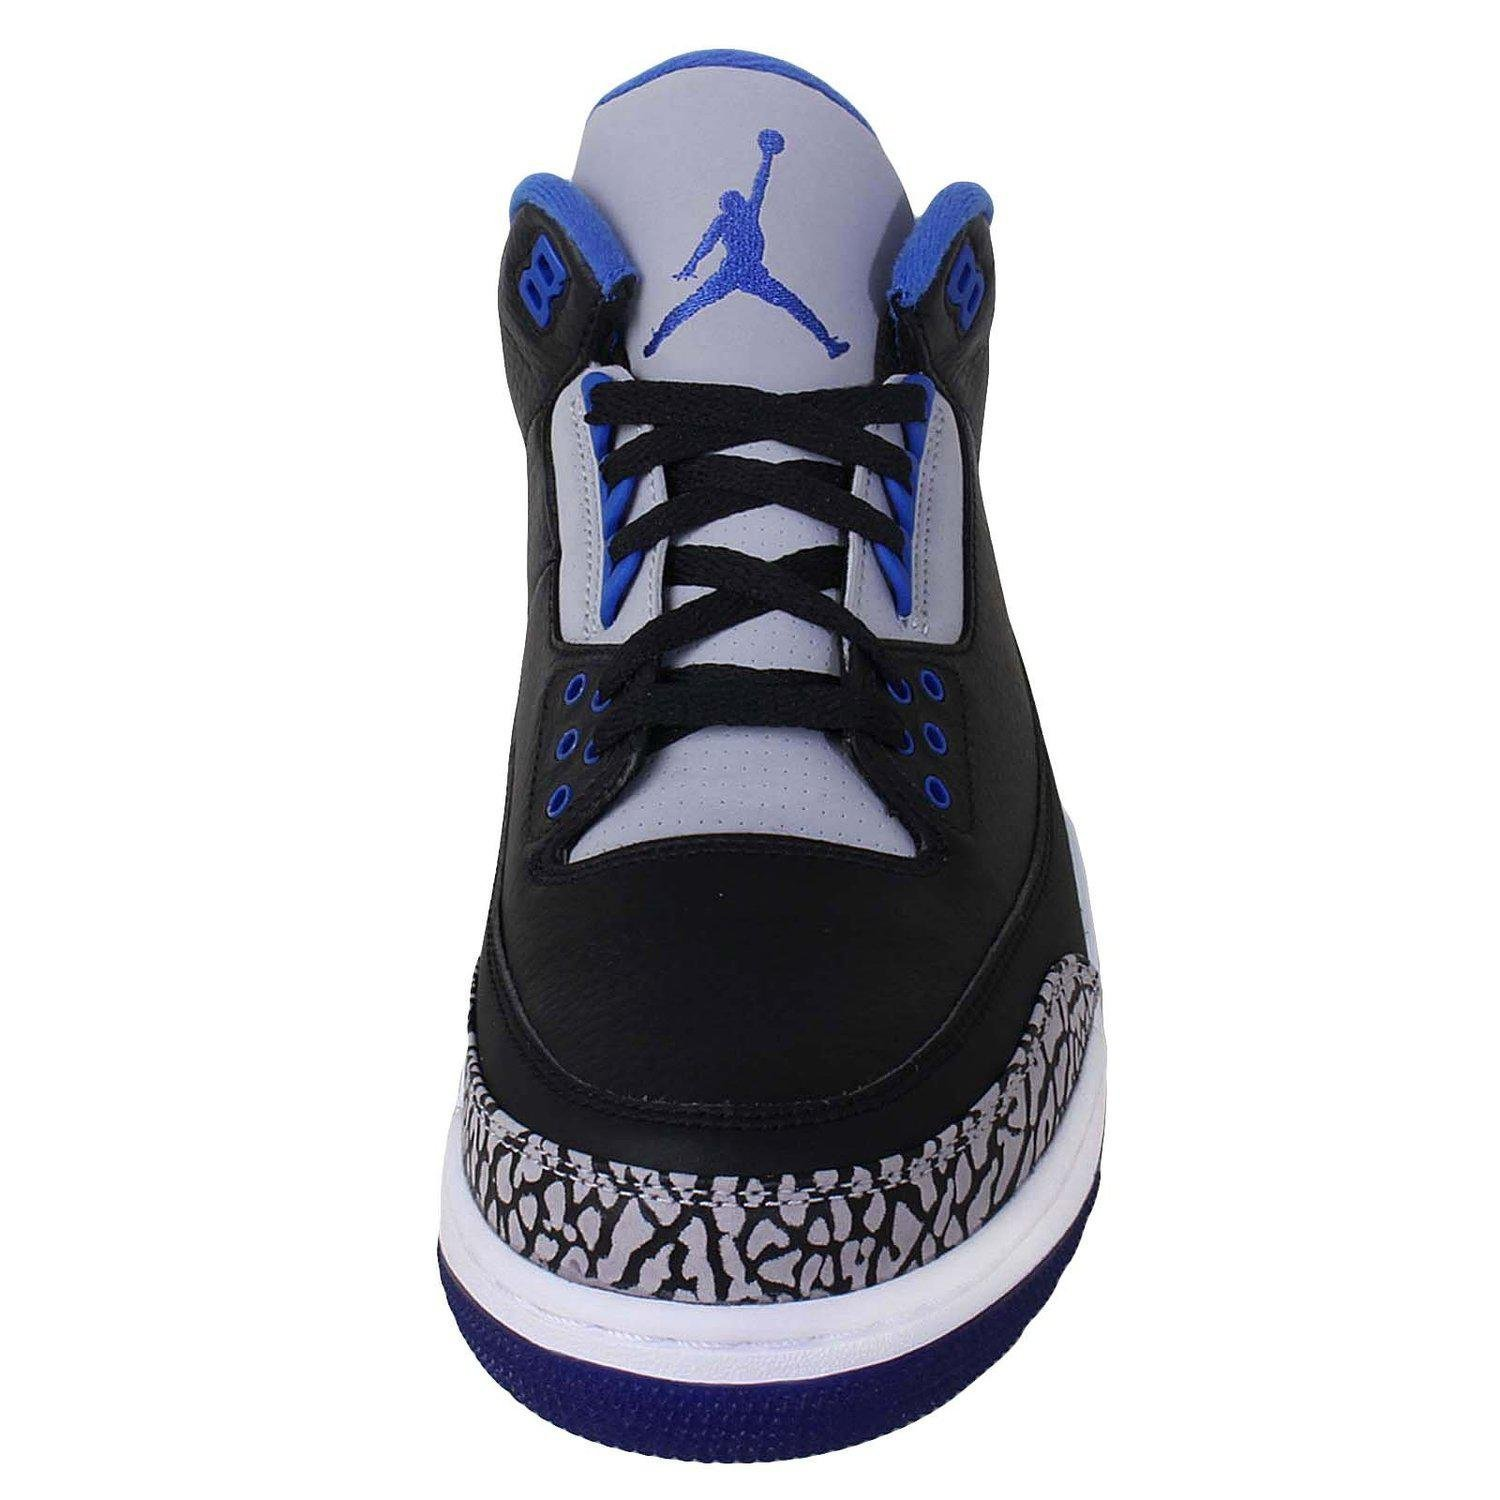 06f6c76b37c5 Get Quotations · Nike Air Jordan 3 Retro Sport Blue Leather Sneaker